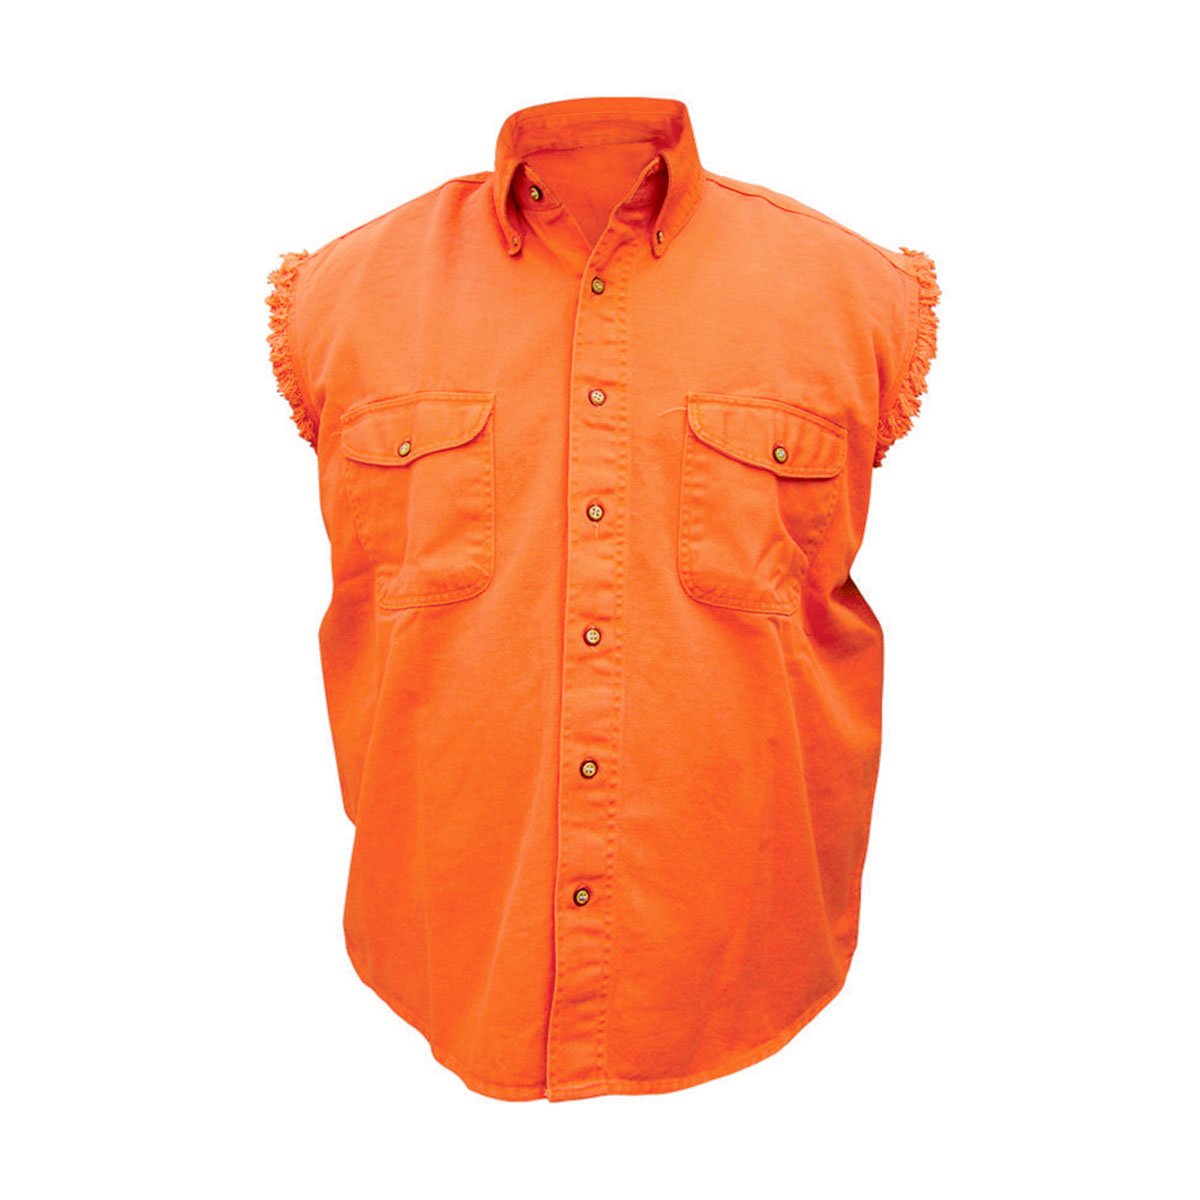 Allstate Leather Inc. Men's Cotton Button Down Orange Sleeveless ...